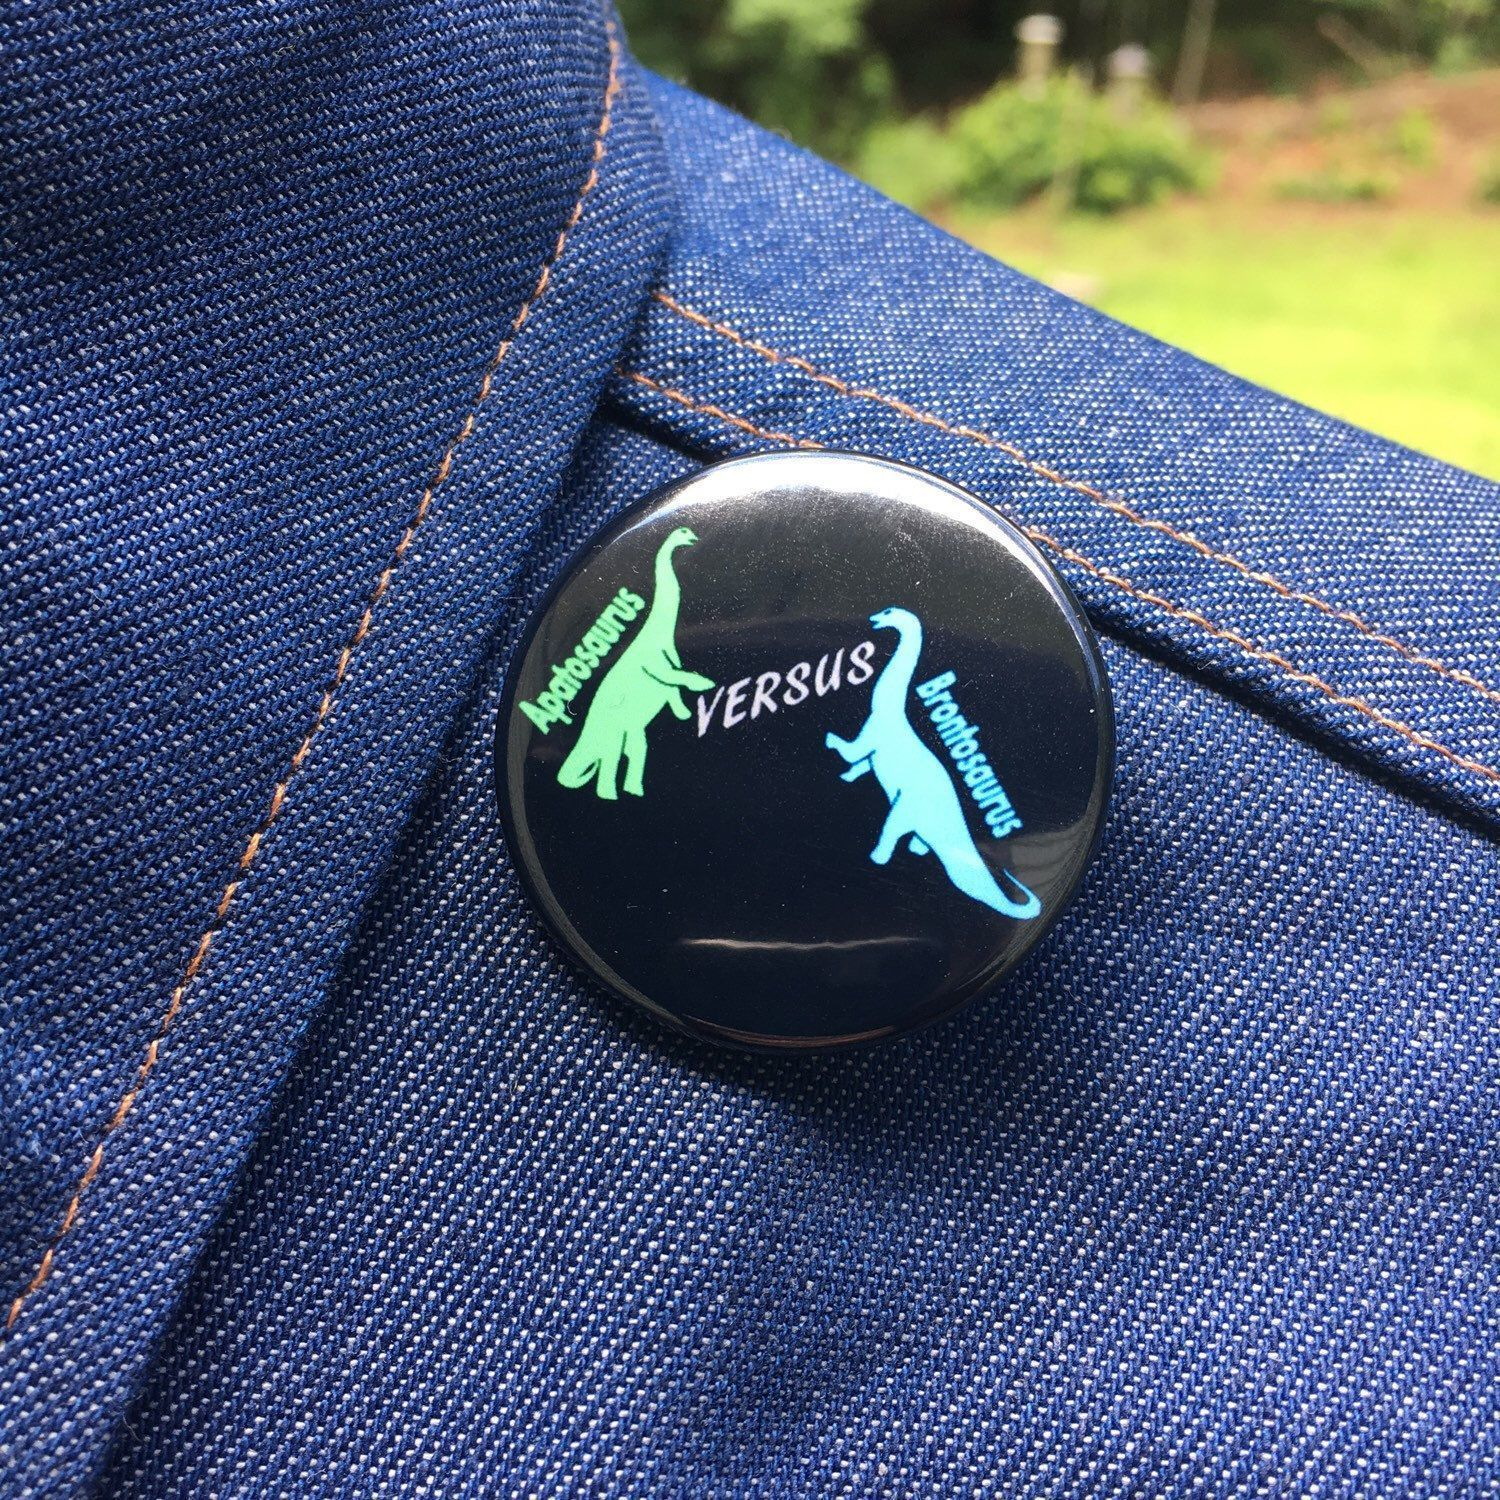 1.5 Funny Dinosaur Pin - History Pins - History Button - History Lover Gifts - History Teacher Gift - Dinosaur Decor - Dinosaur Accessories #historyofdinosaurs I'm pretty sure this is my favorite pin in the shop right now. (I'm also pretty sure I said that about the shirt, too!)  #TheSamAntics #dinosaurs #history #historylover #historybuff #paleontology #historyofdinosaurs 1.5 Funny Dinosaur Pin - History Pins - History Button - History Lover Gifts - History Teacher Gift - Dinosaur Decor - D #historyofdinosaurs